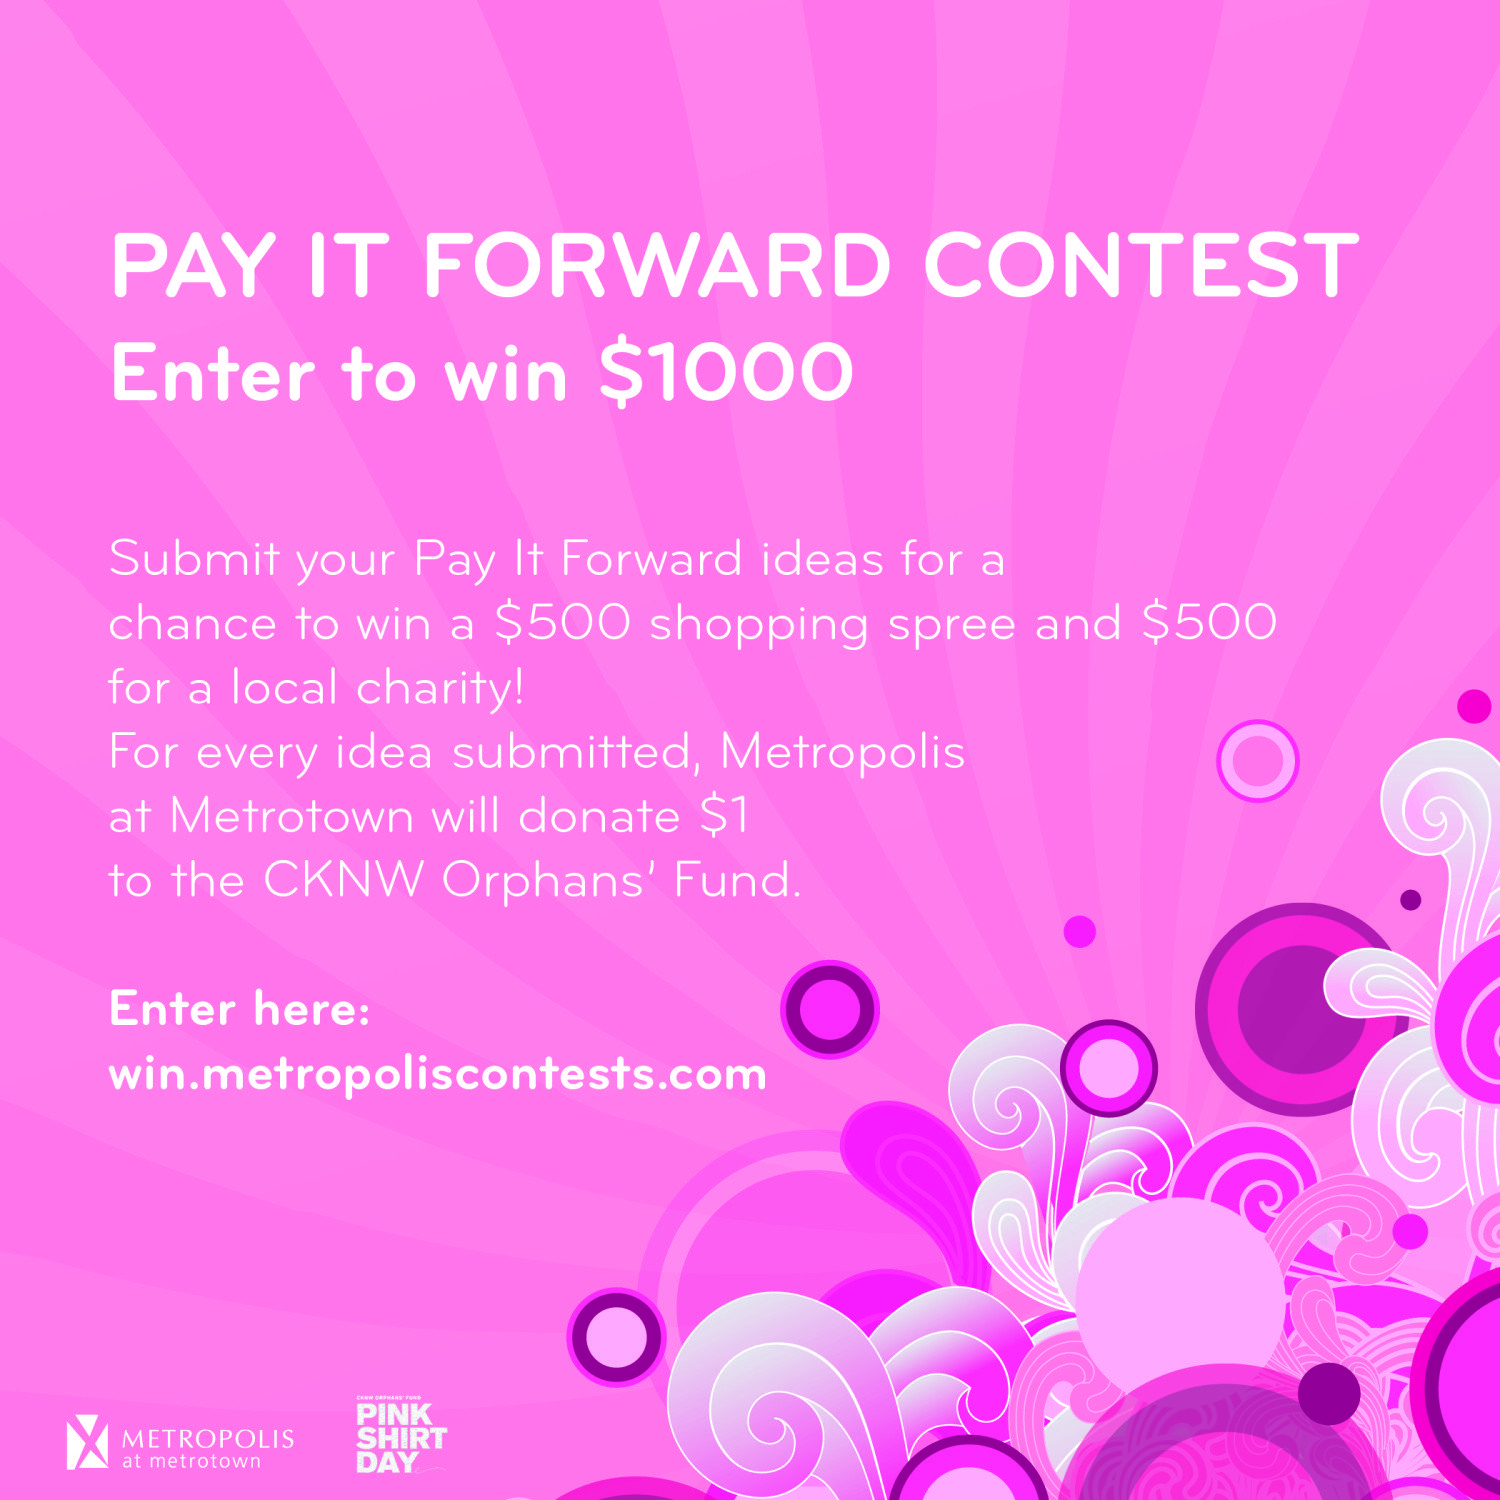 Pay it Forward contest